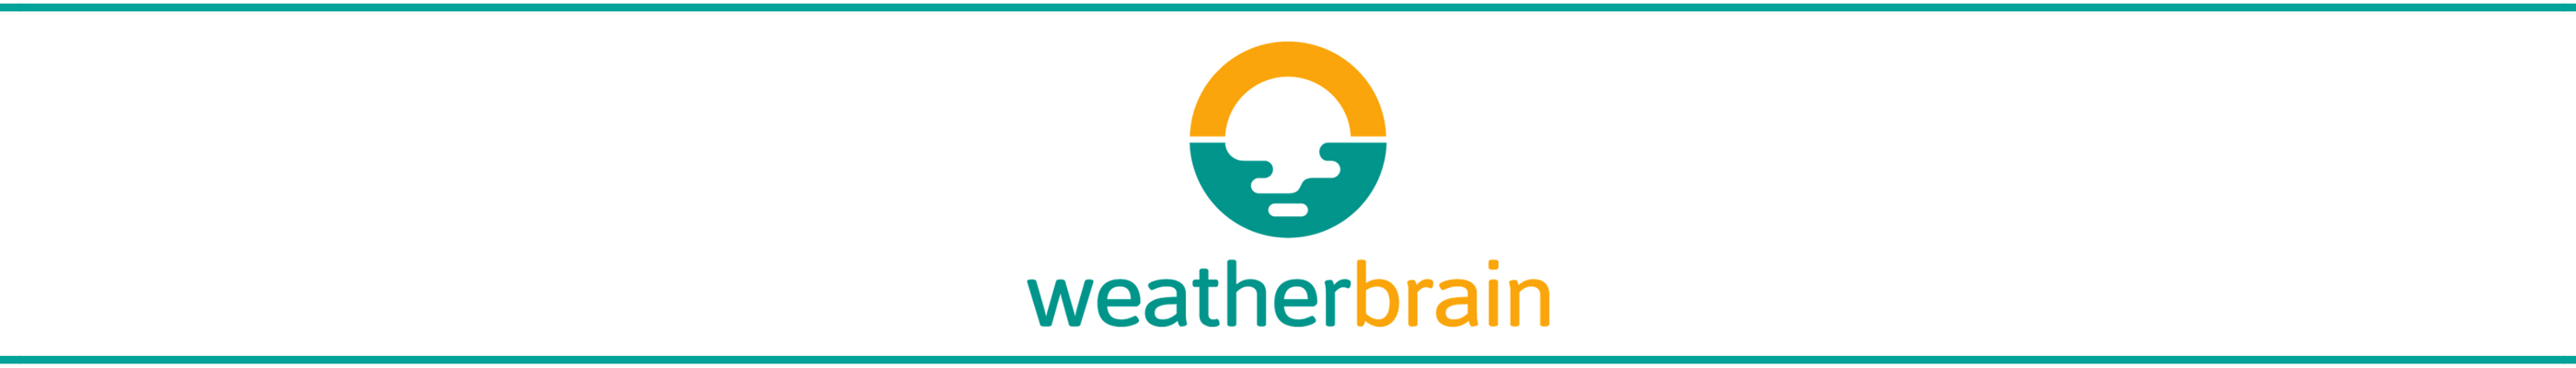 WeatherBrain Environmental Decision Support Software